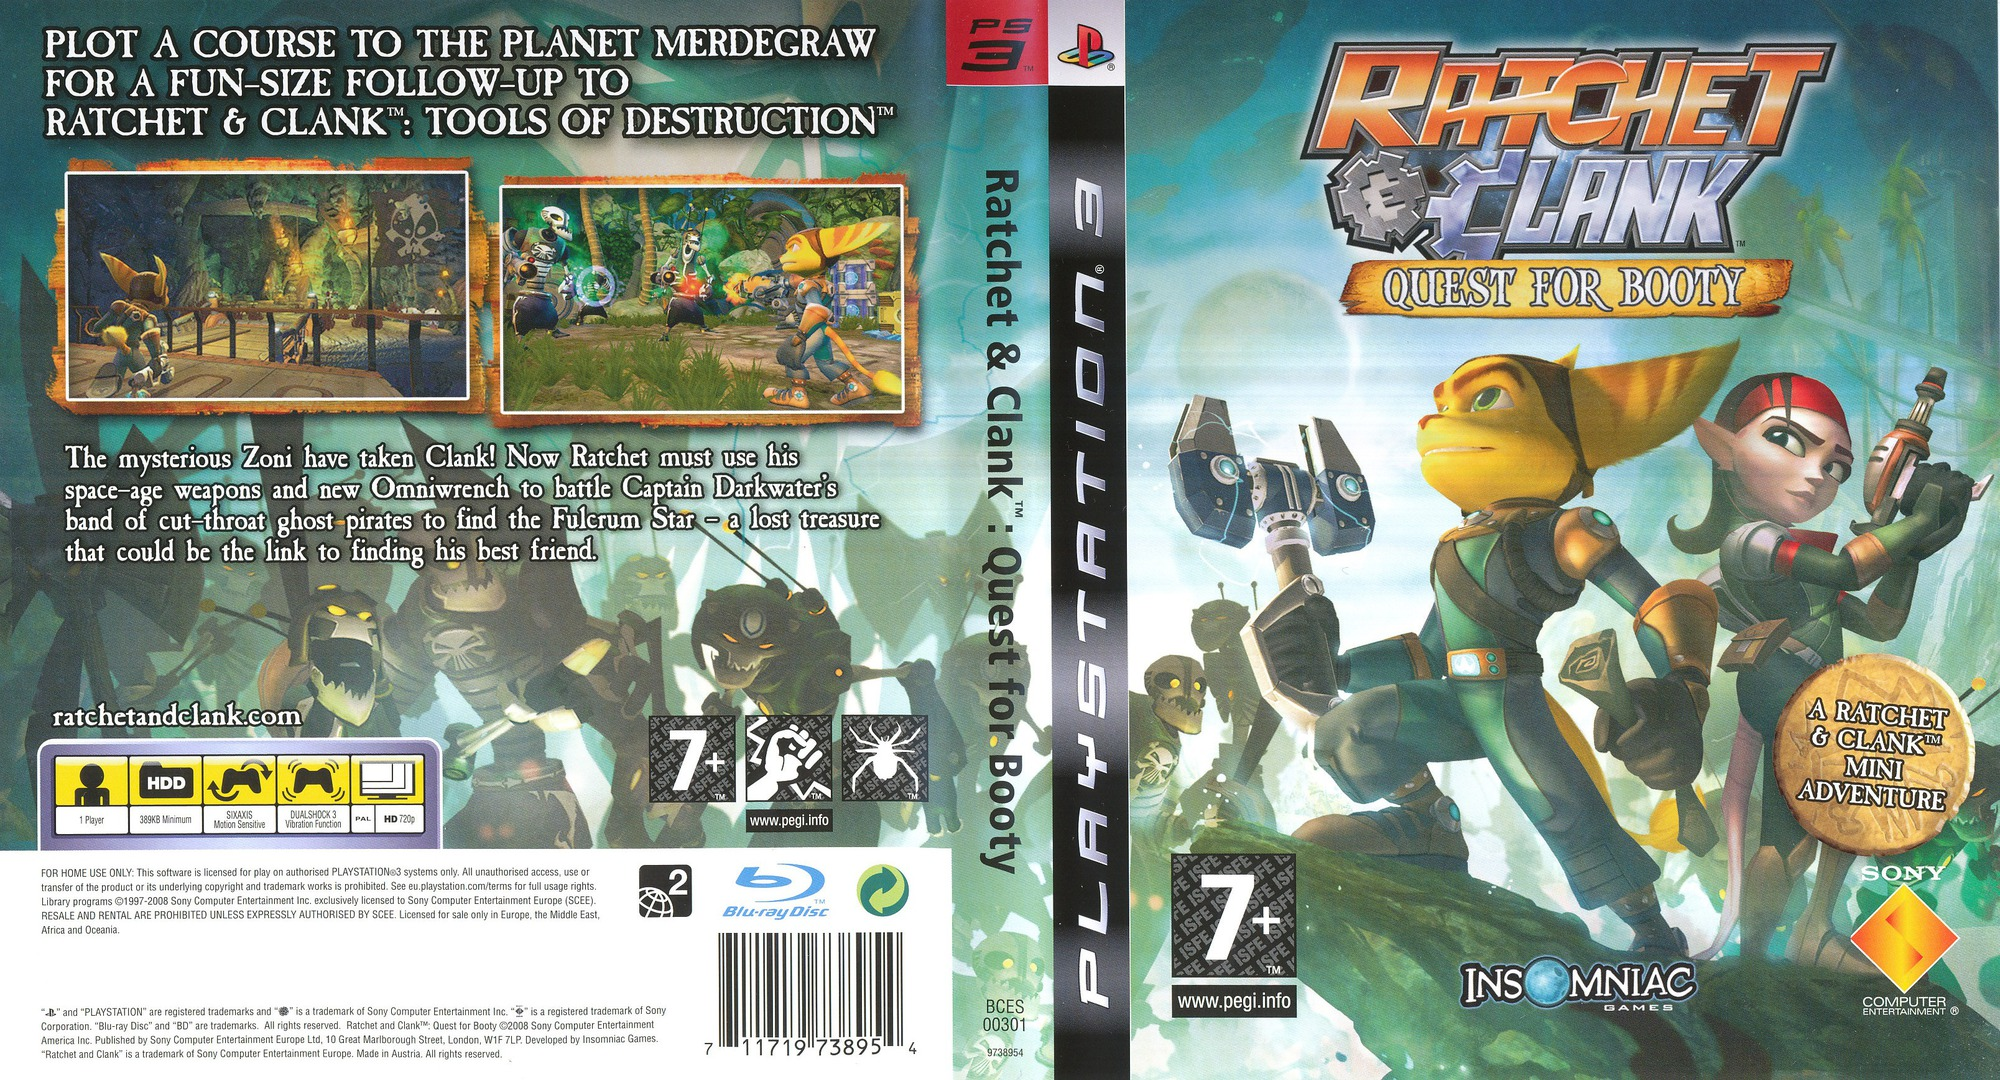 Ratchet & Clank: Quest for Booty PS3 coverfullHQ (BCES00301)